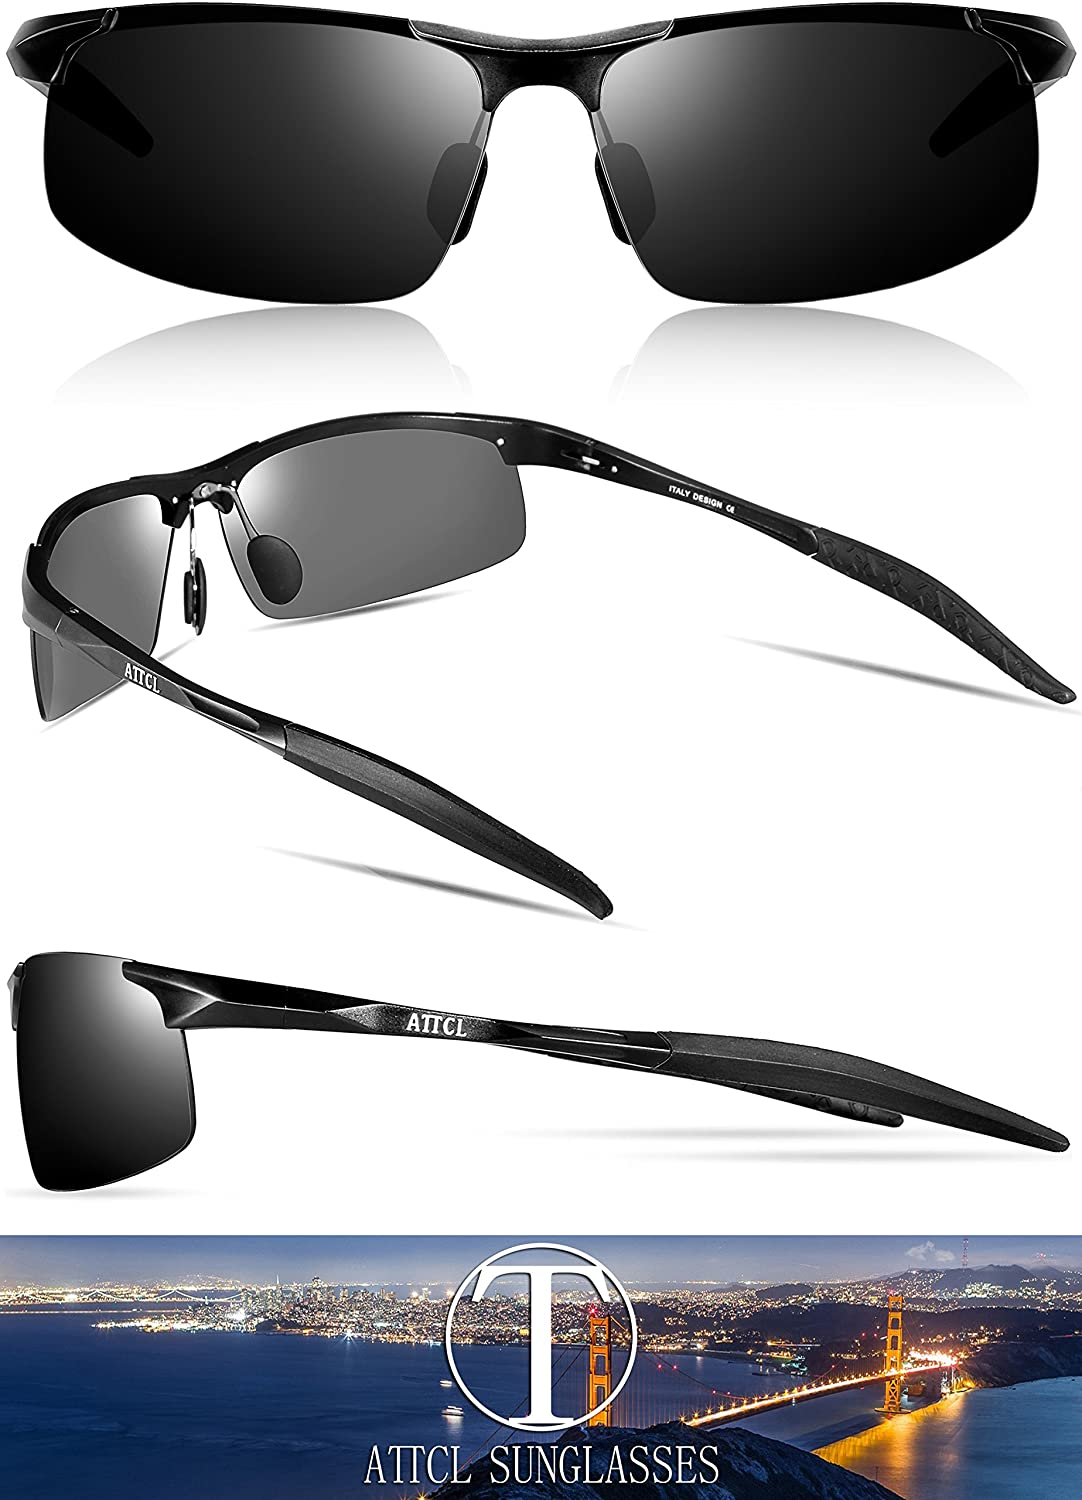 29a66a15c3 ATTCL Men s Driving Polarized Sunglasses Unbreakable Metal Frame 8177  black  Amazon.ca  Clothing   Accessories